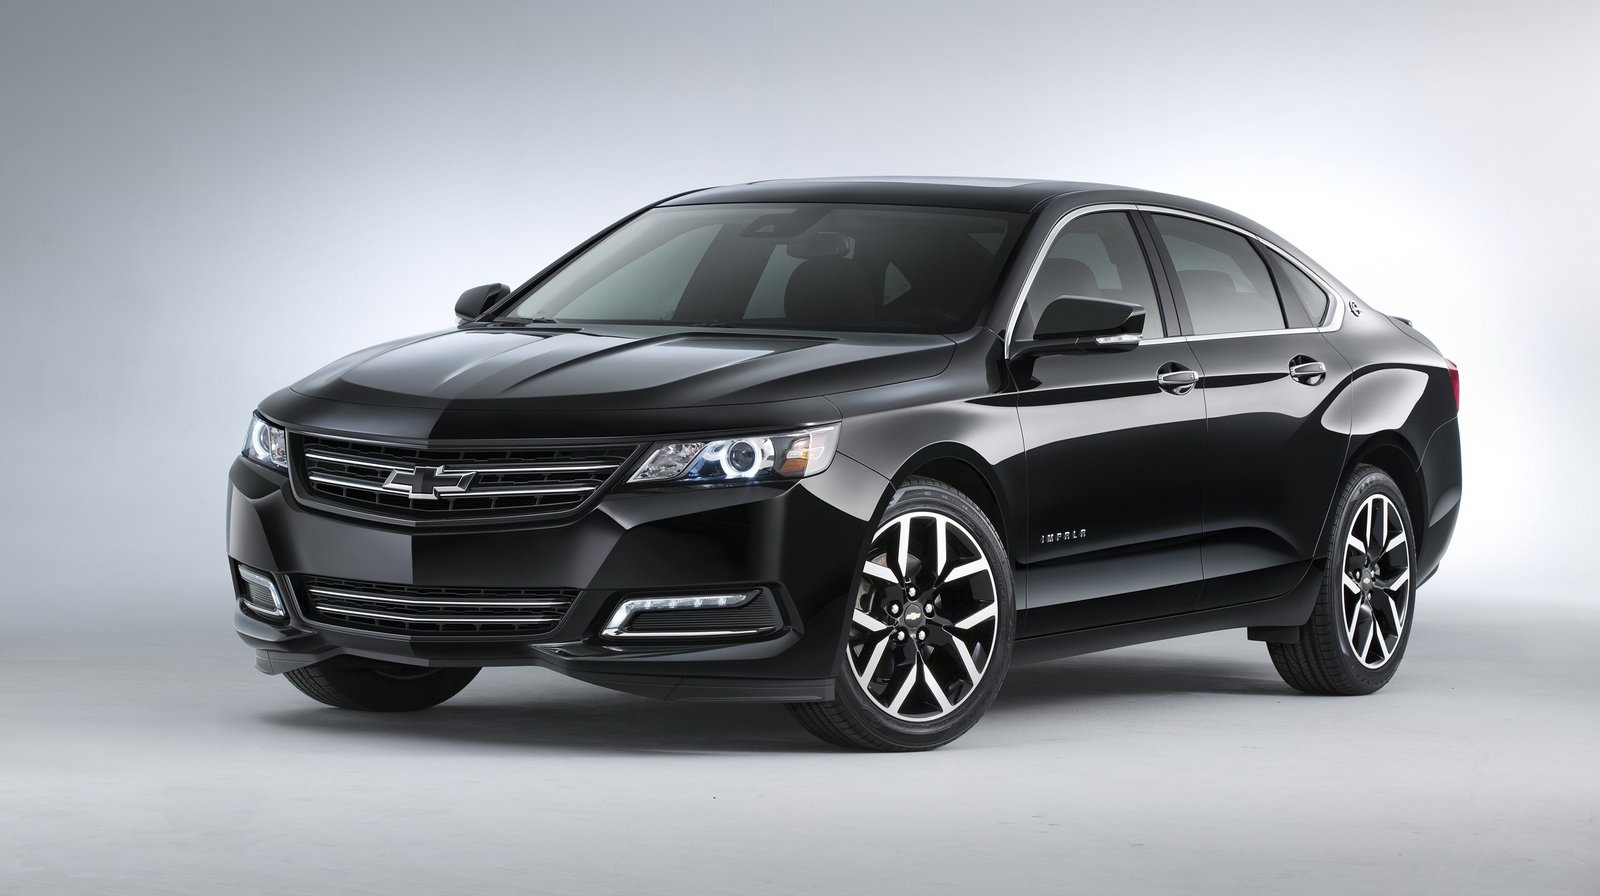 Chevrolet Impala Prices, Reviews and Pictures | U.S. News & World ...